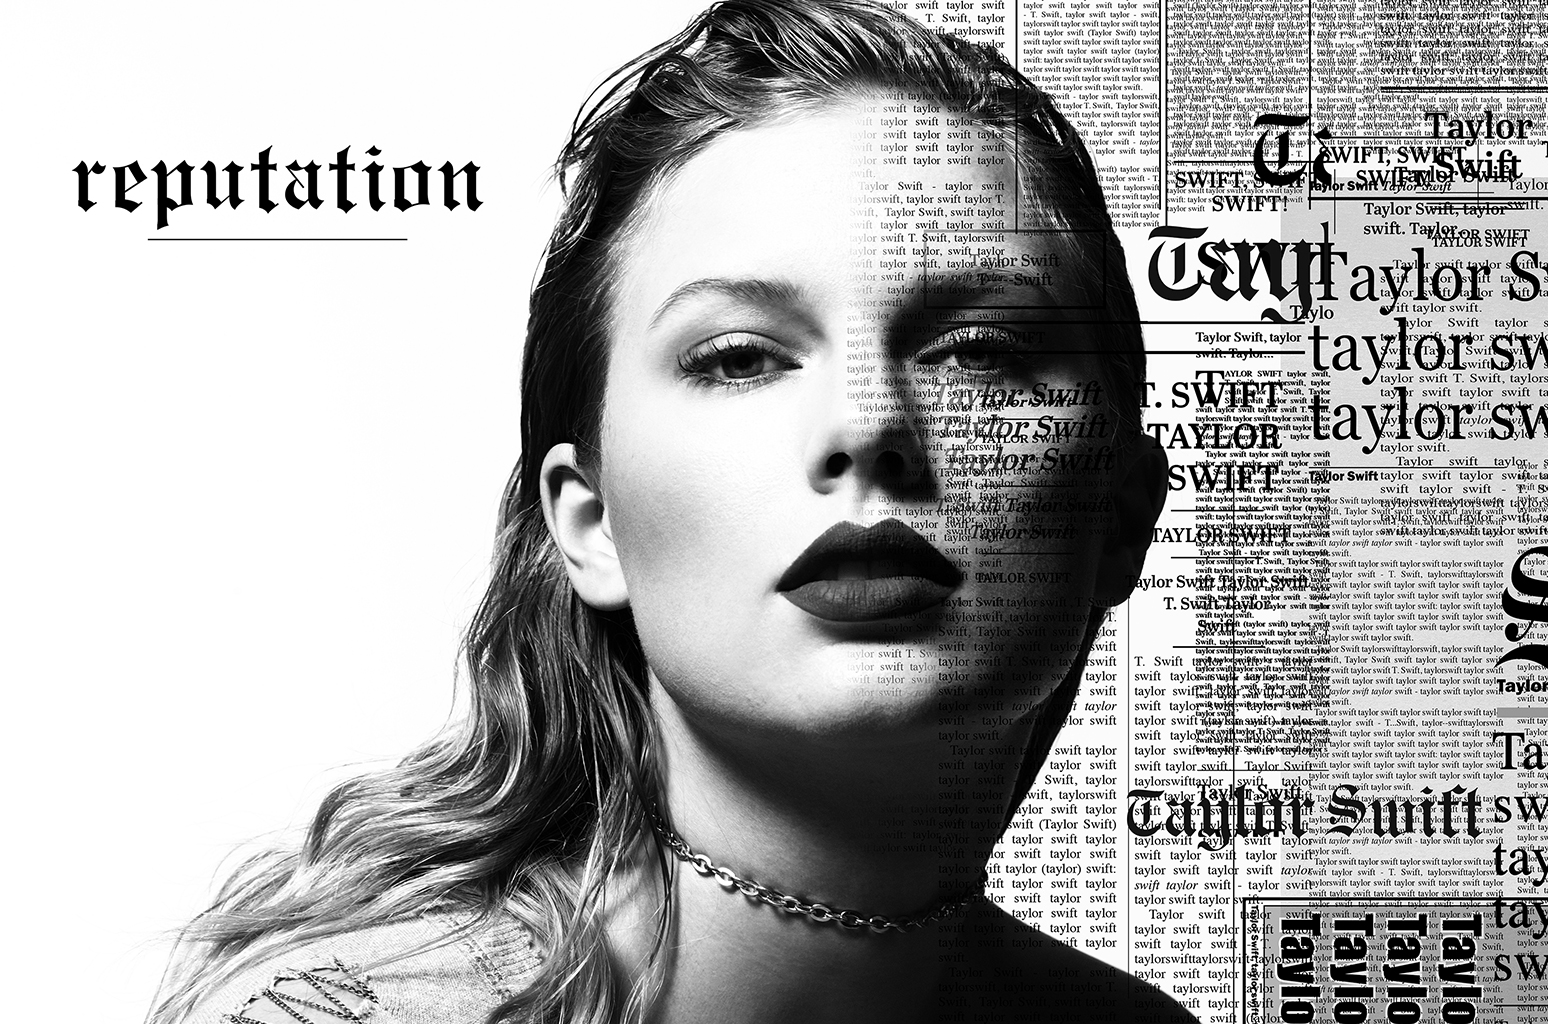 Review: Taylor Swift doesn't give a damn about her 'reputation'